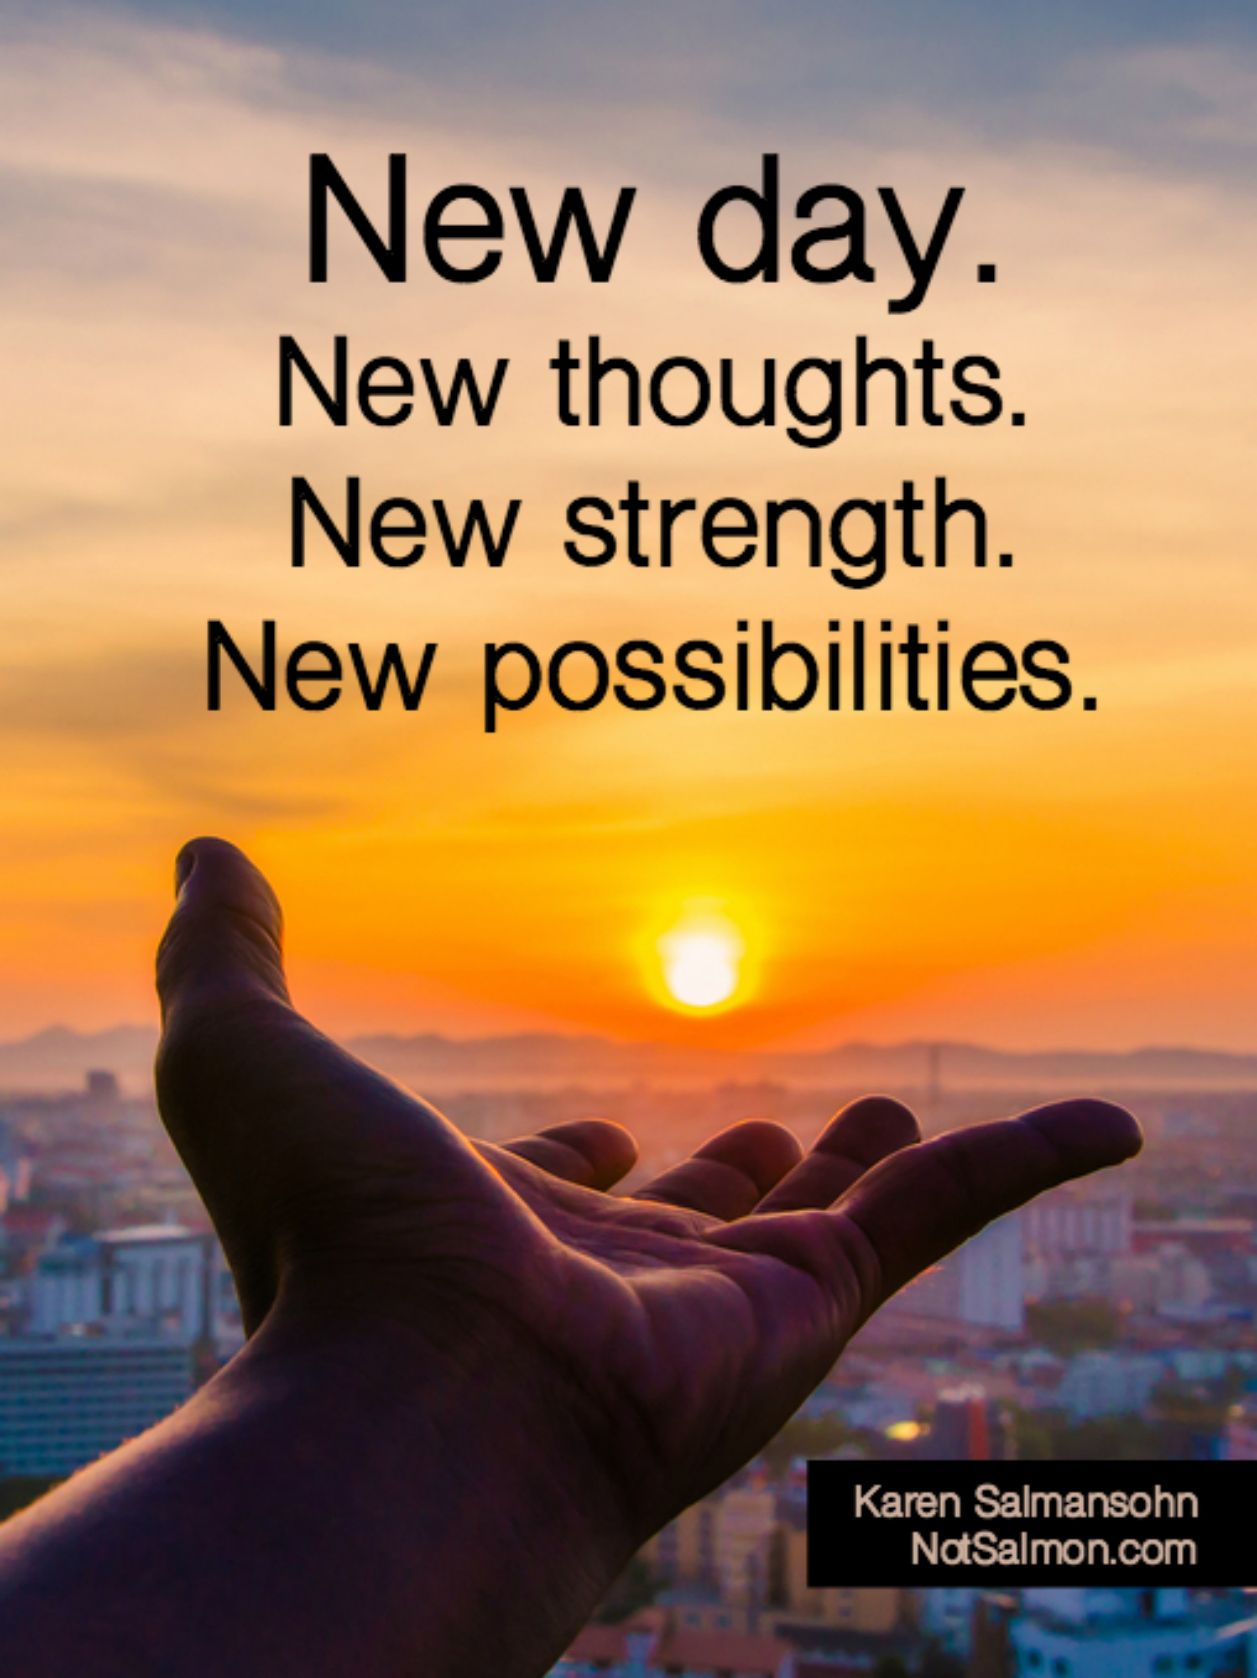 A New Day Sayings and A New Day Quotes | Wise Sayings